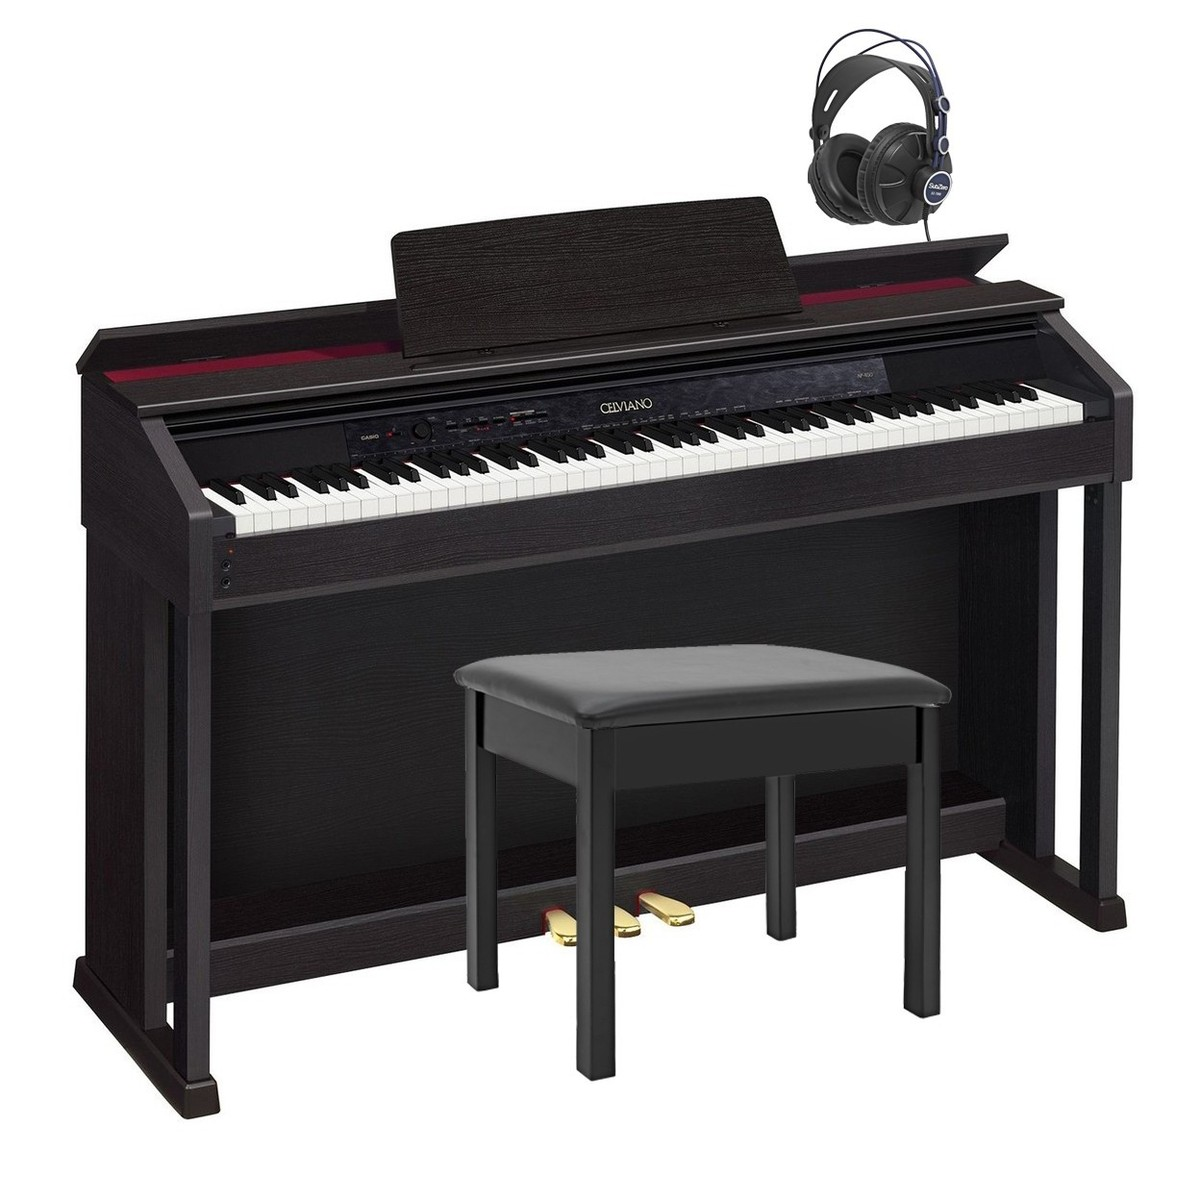 Image of Casio Celviano AP-450 Digital Piano with Stand and Headphones